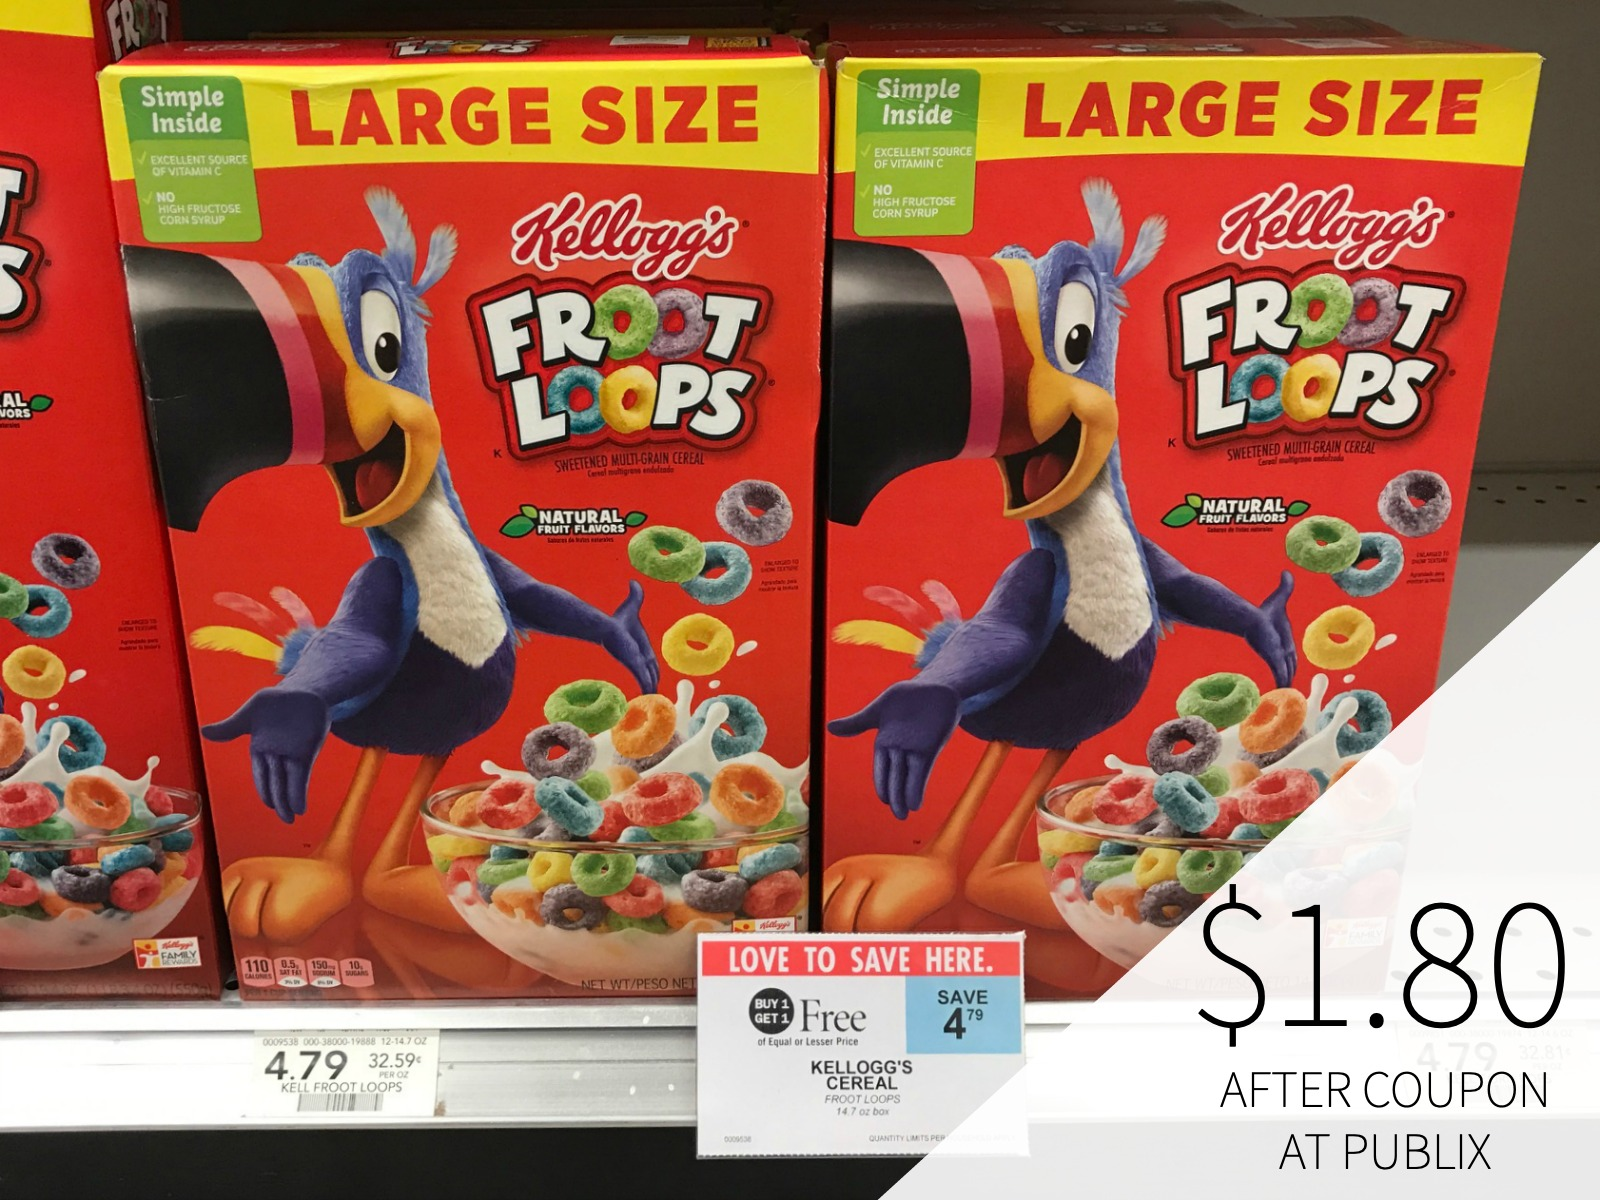 Stock Up On Frosted Flakes And Froot Loops During The BOGO Sale At Publix on I Heart Publix 1